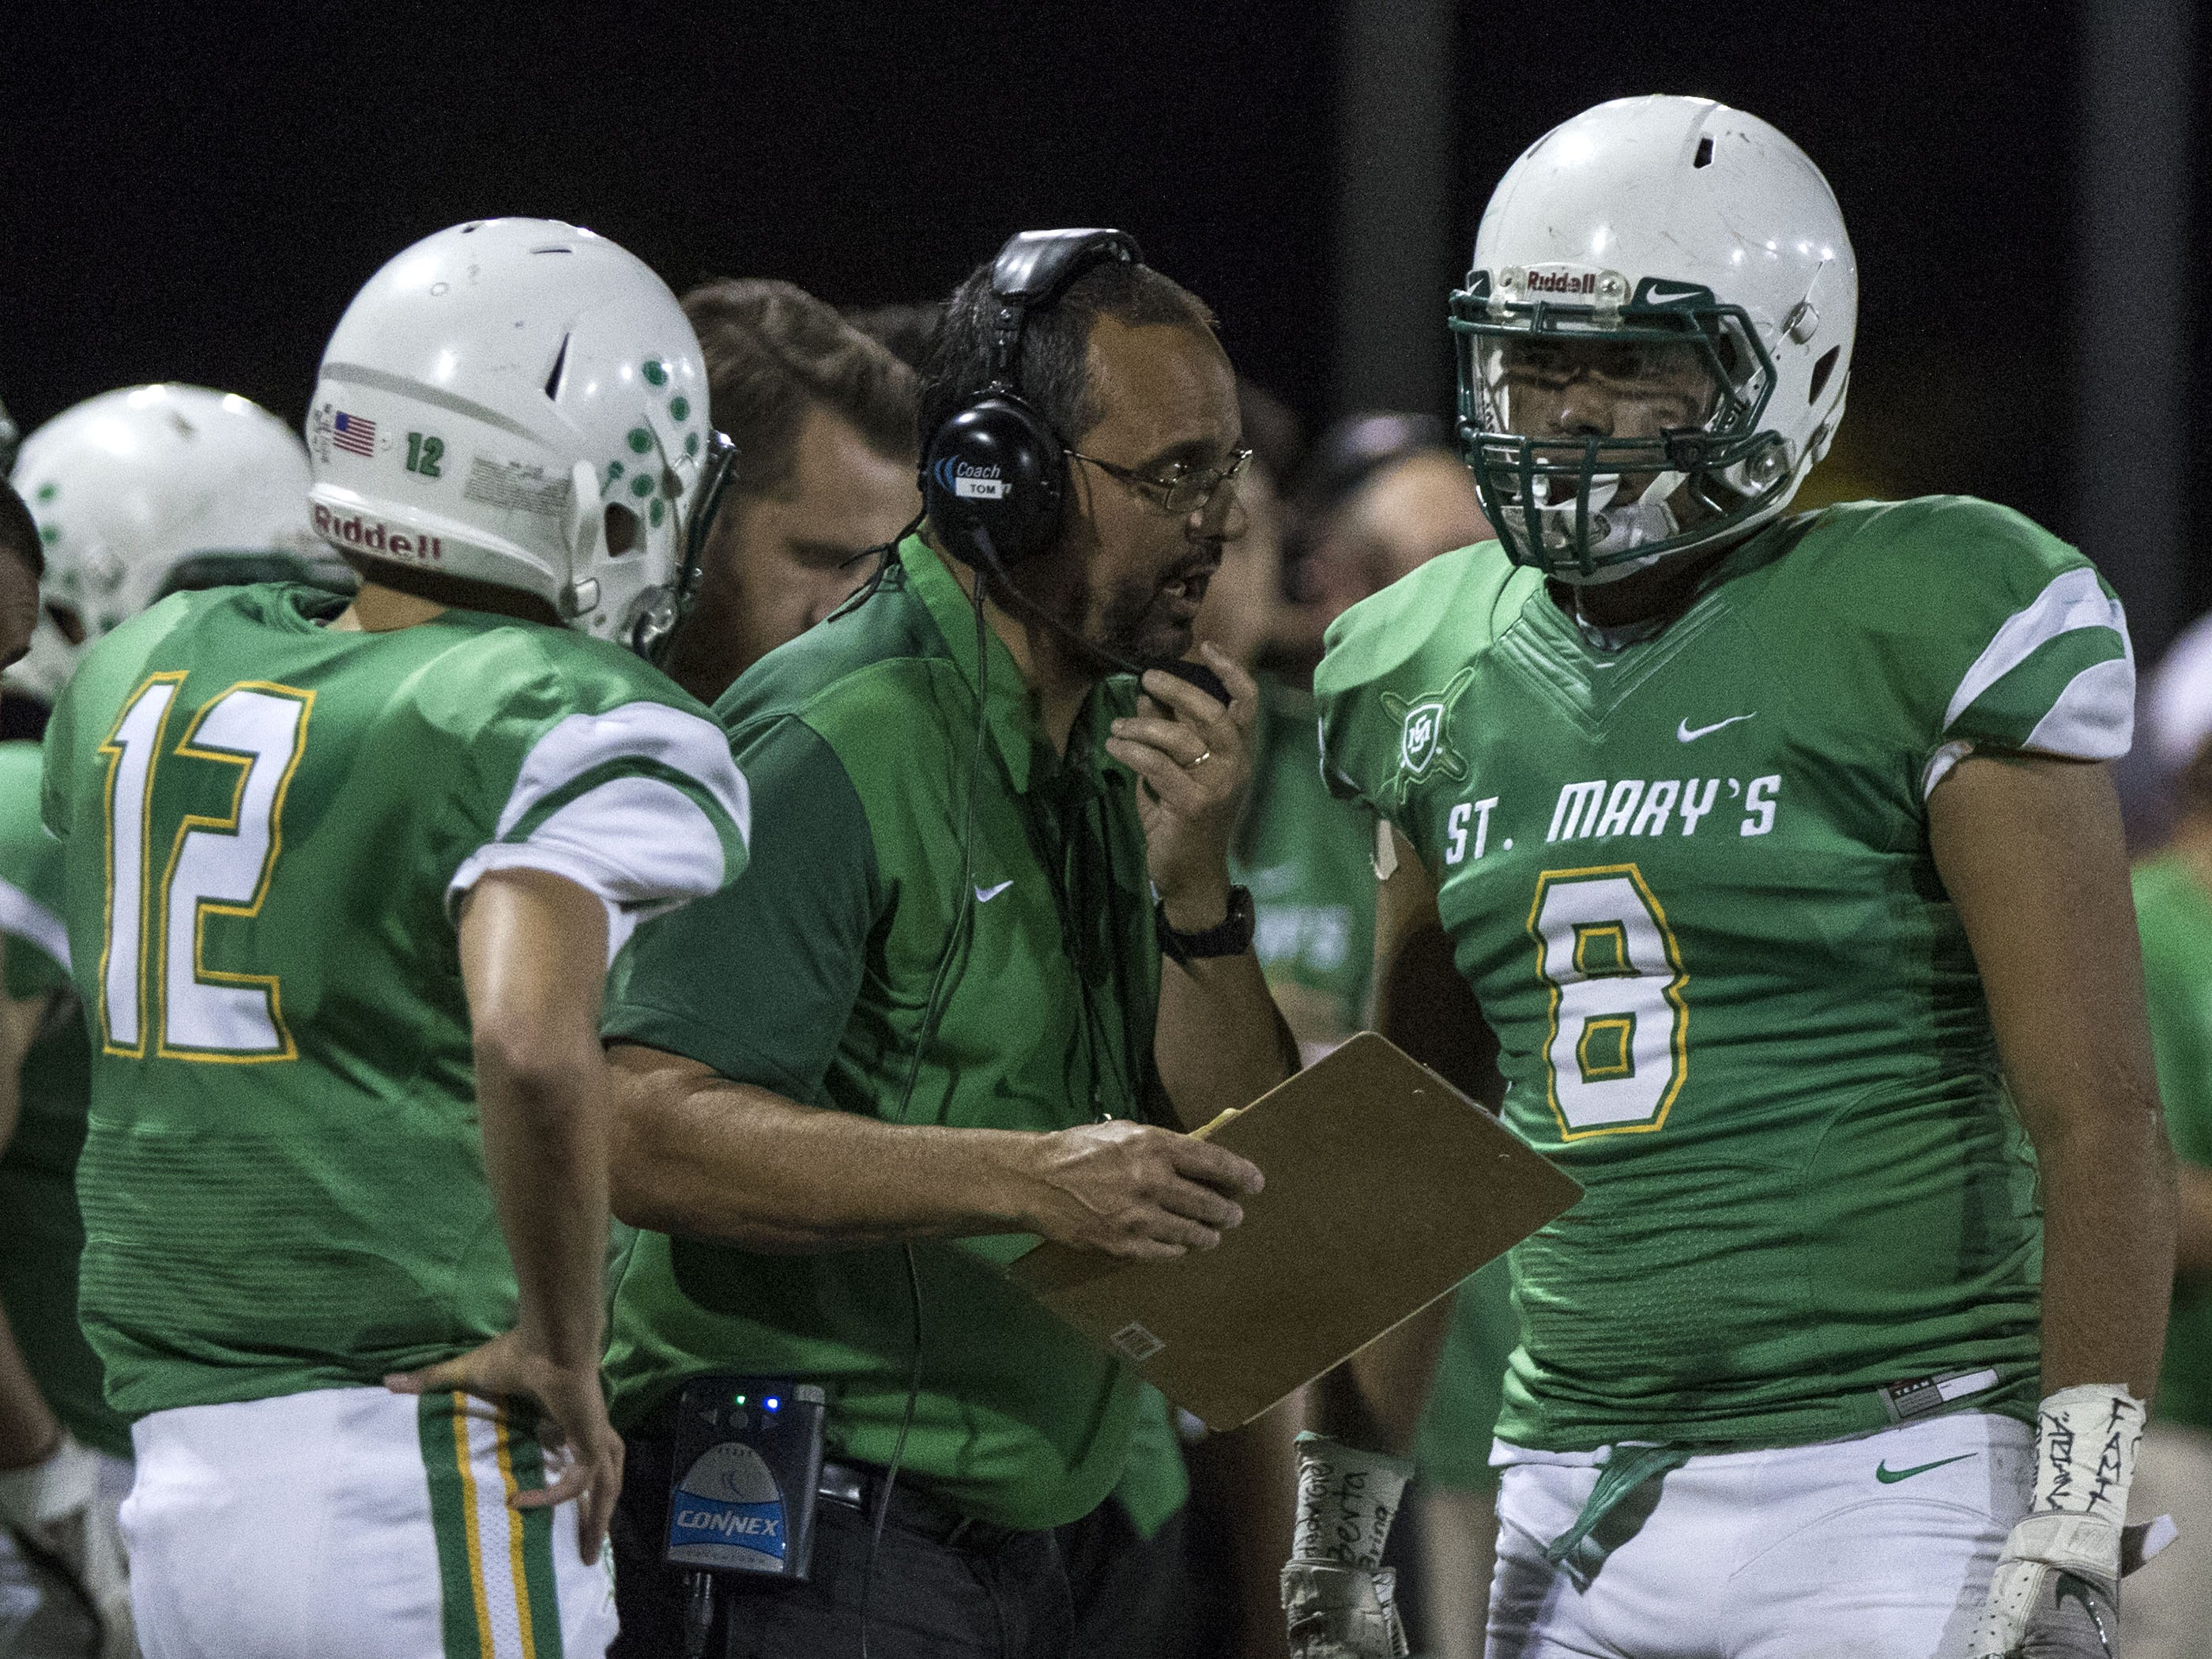 St. Mary's coach Tom Brittain calls a play against Greenway at Phoenix College in Phoenix Friday, Oct. 12, 2018. #azhsfb